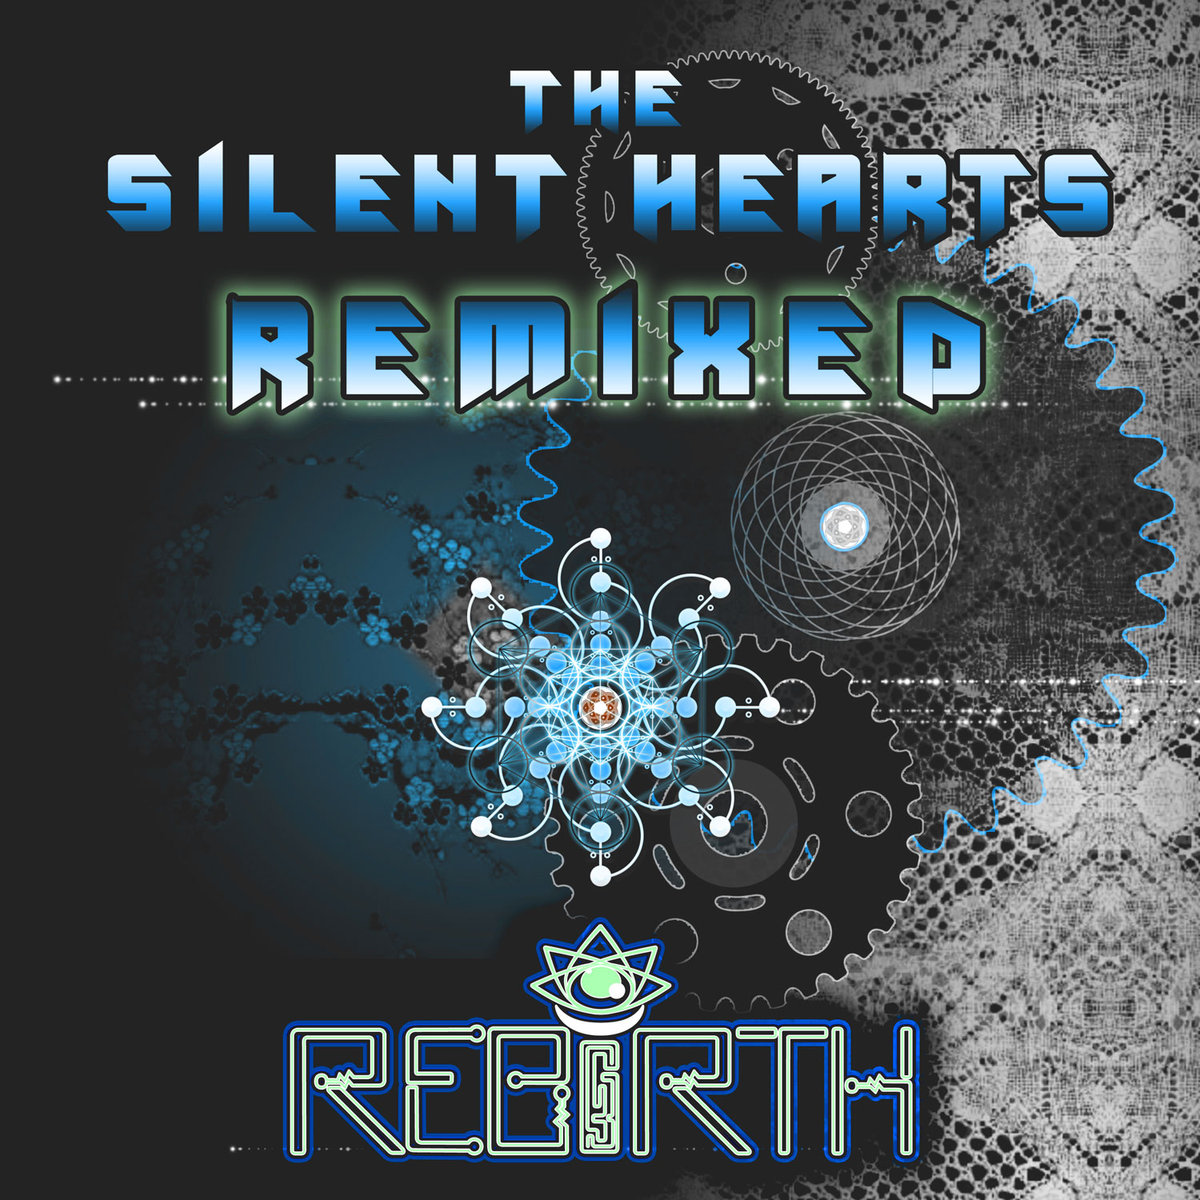 Rebirth - Silent Hearts (DubZilla Remix) @ 'The Silent Hearts: Remixed' album (bass, electronic)